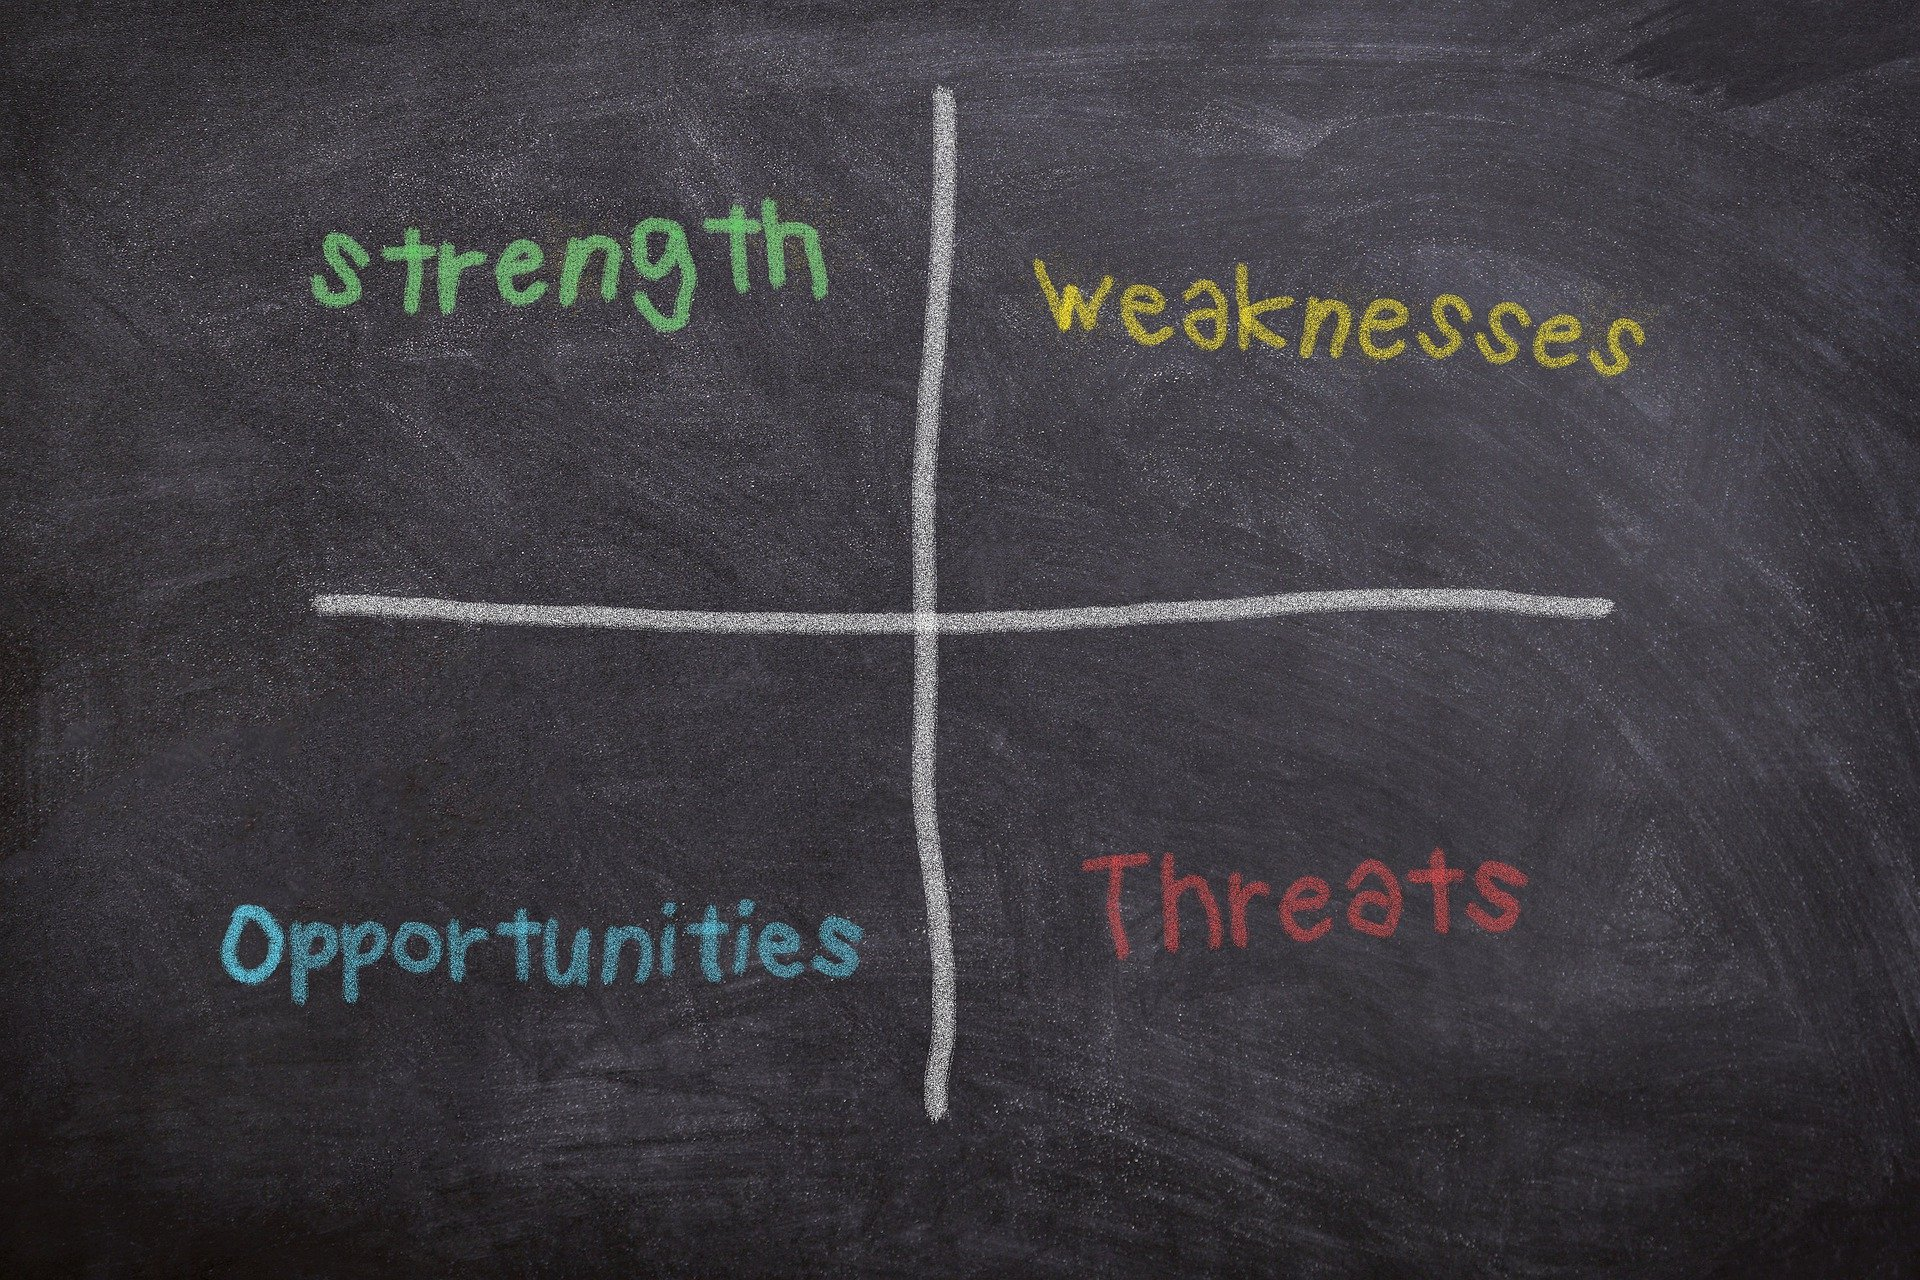 Strength, weaknesses, opportunities, threats table on a chalkboard